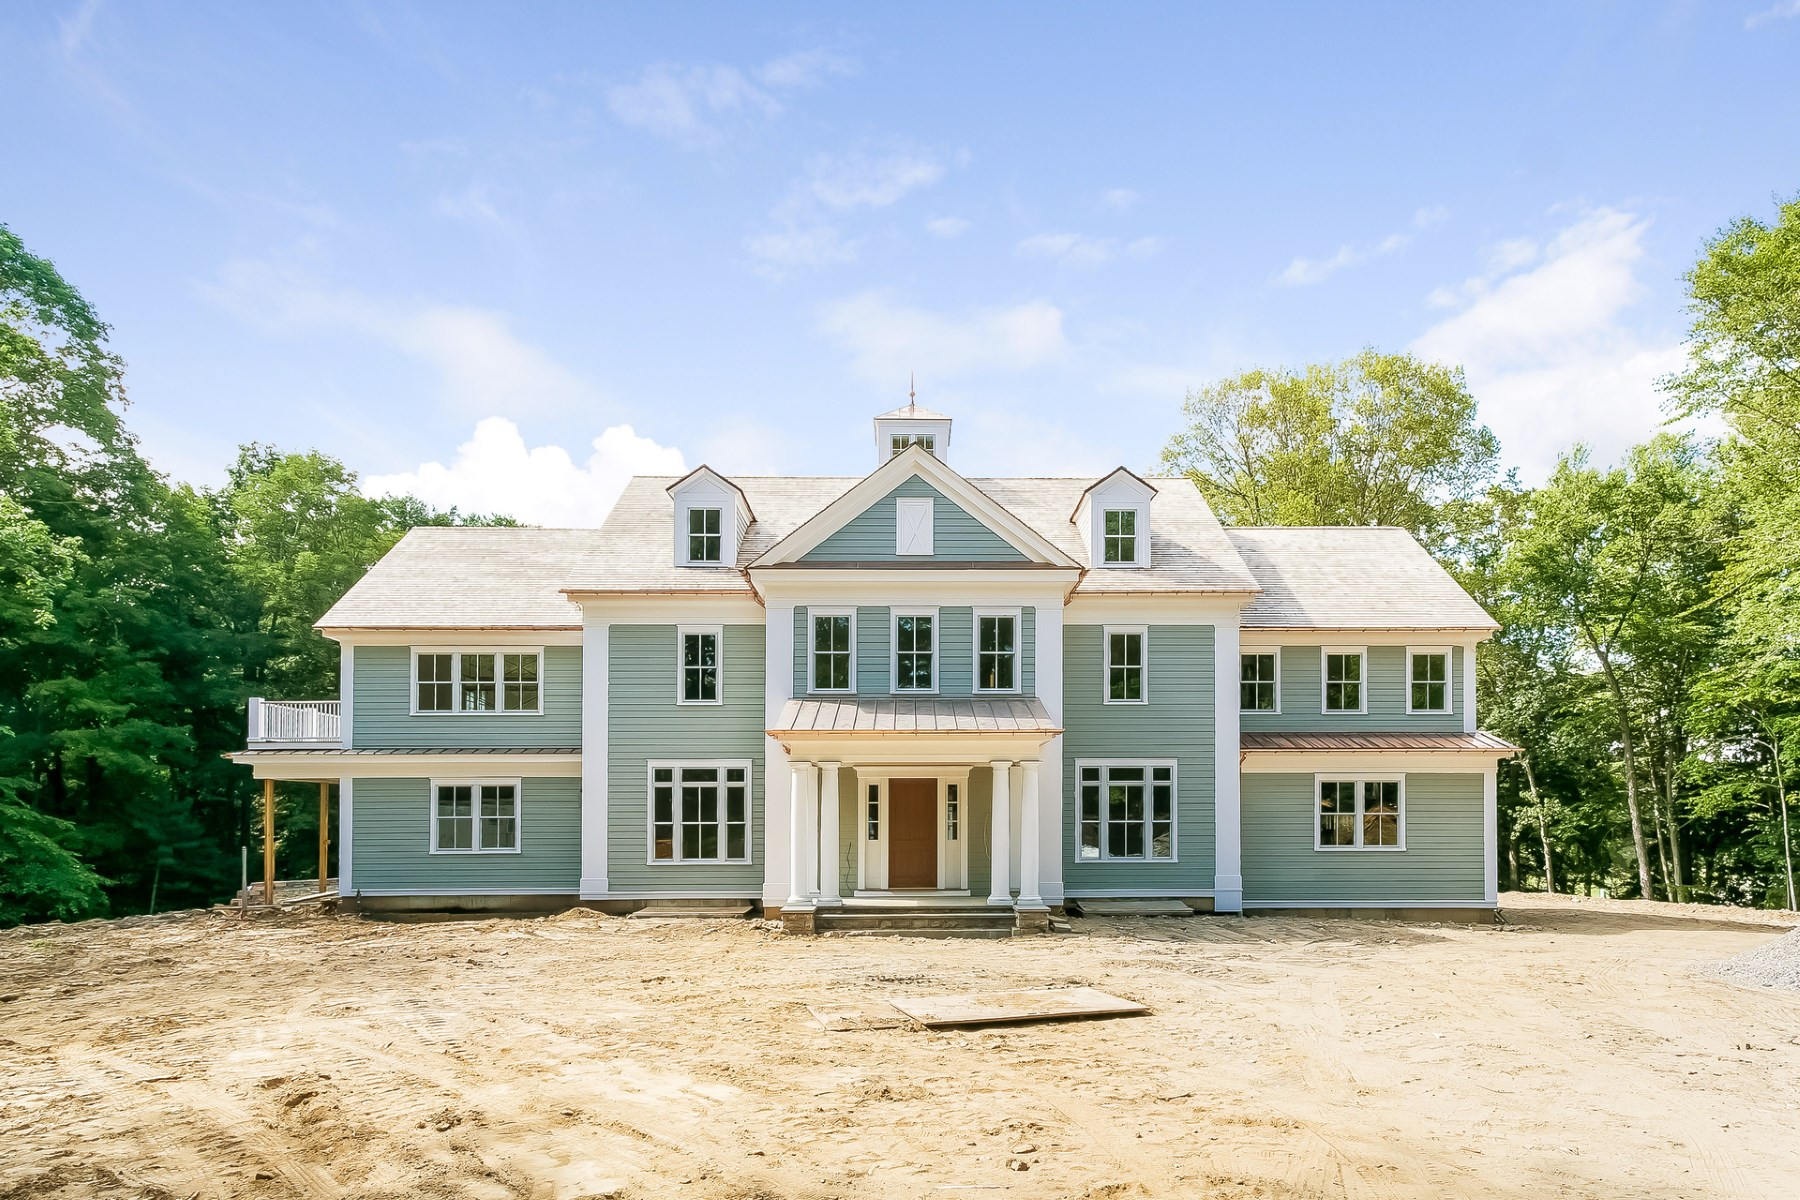 Single Family Home for Sale at 49 Byfield Lane Mid-Country, Greenwich, Connecticut, 06831 United States